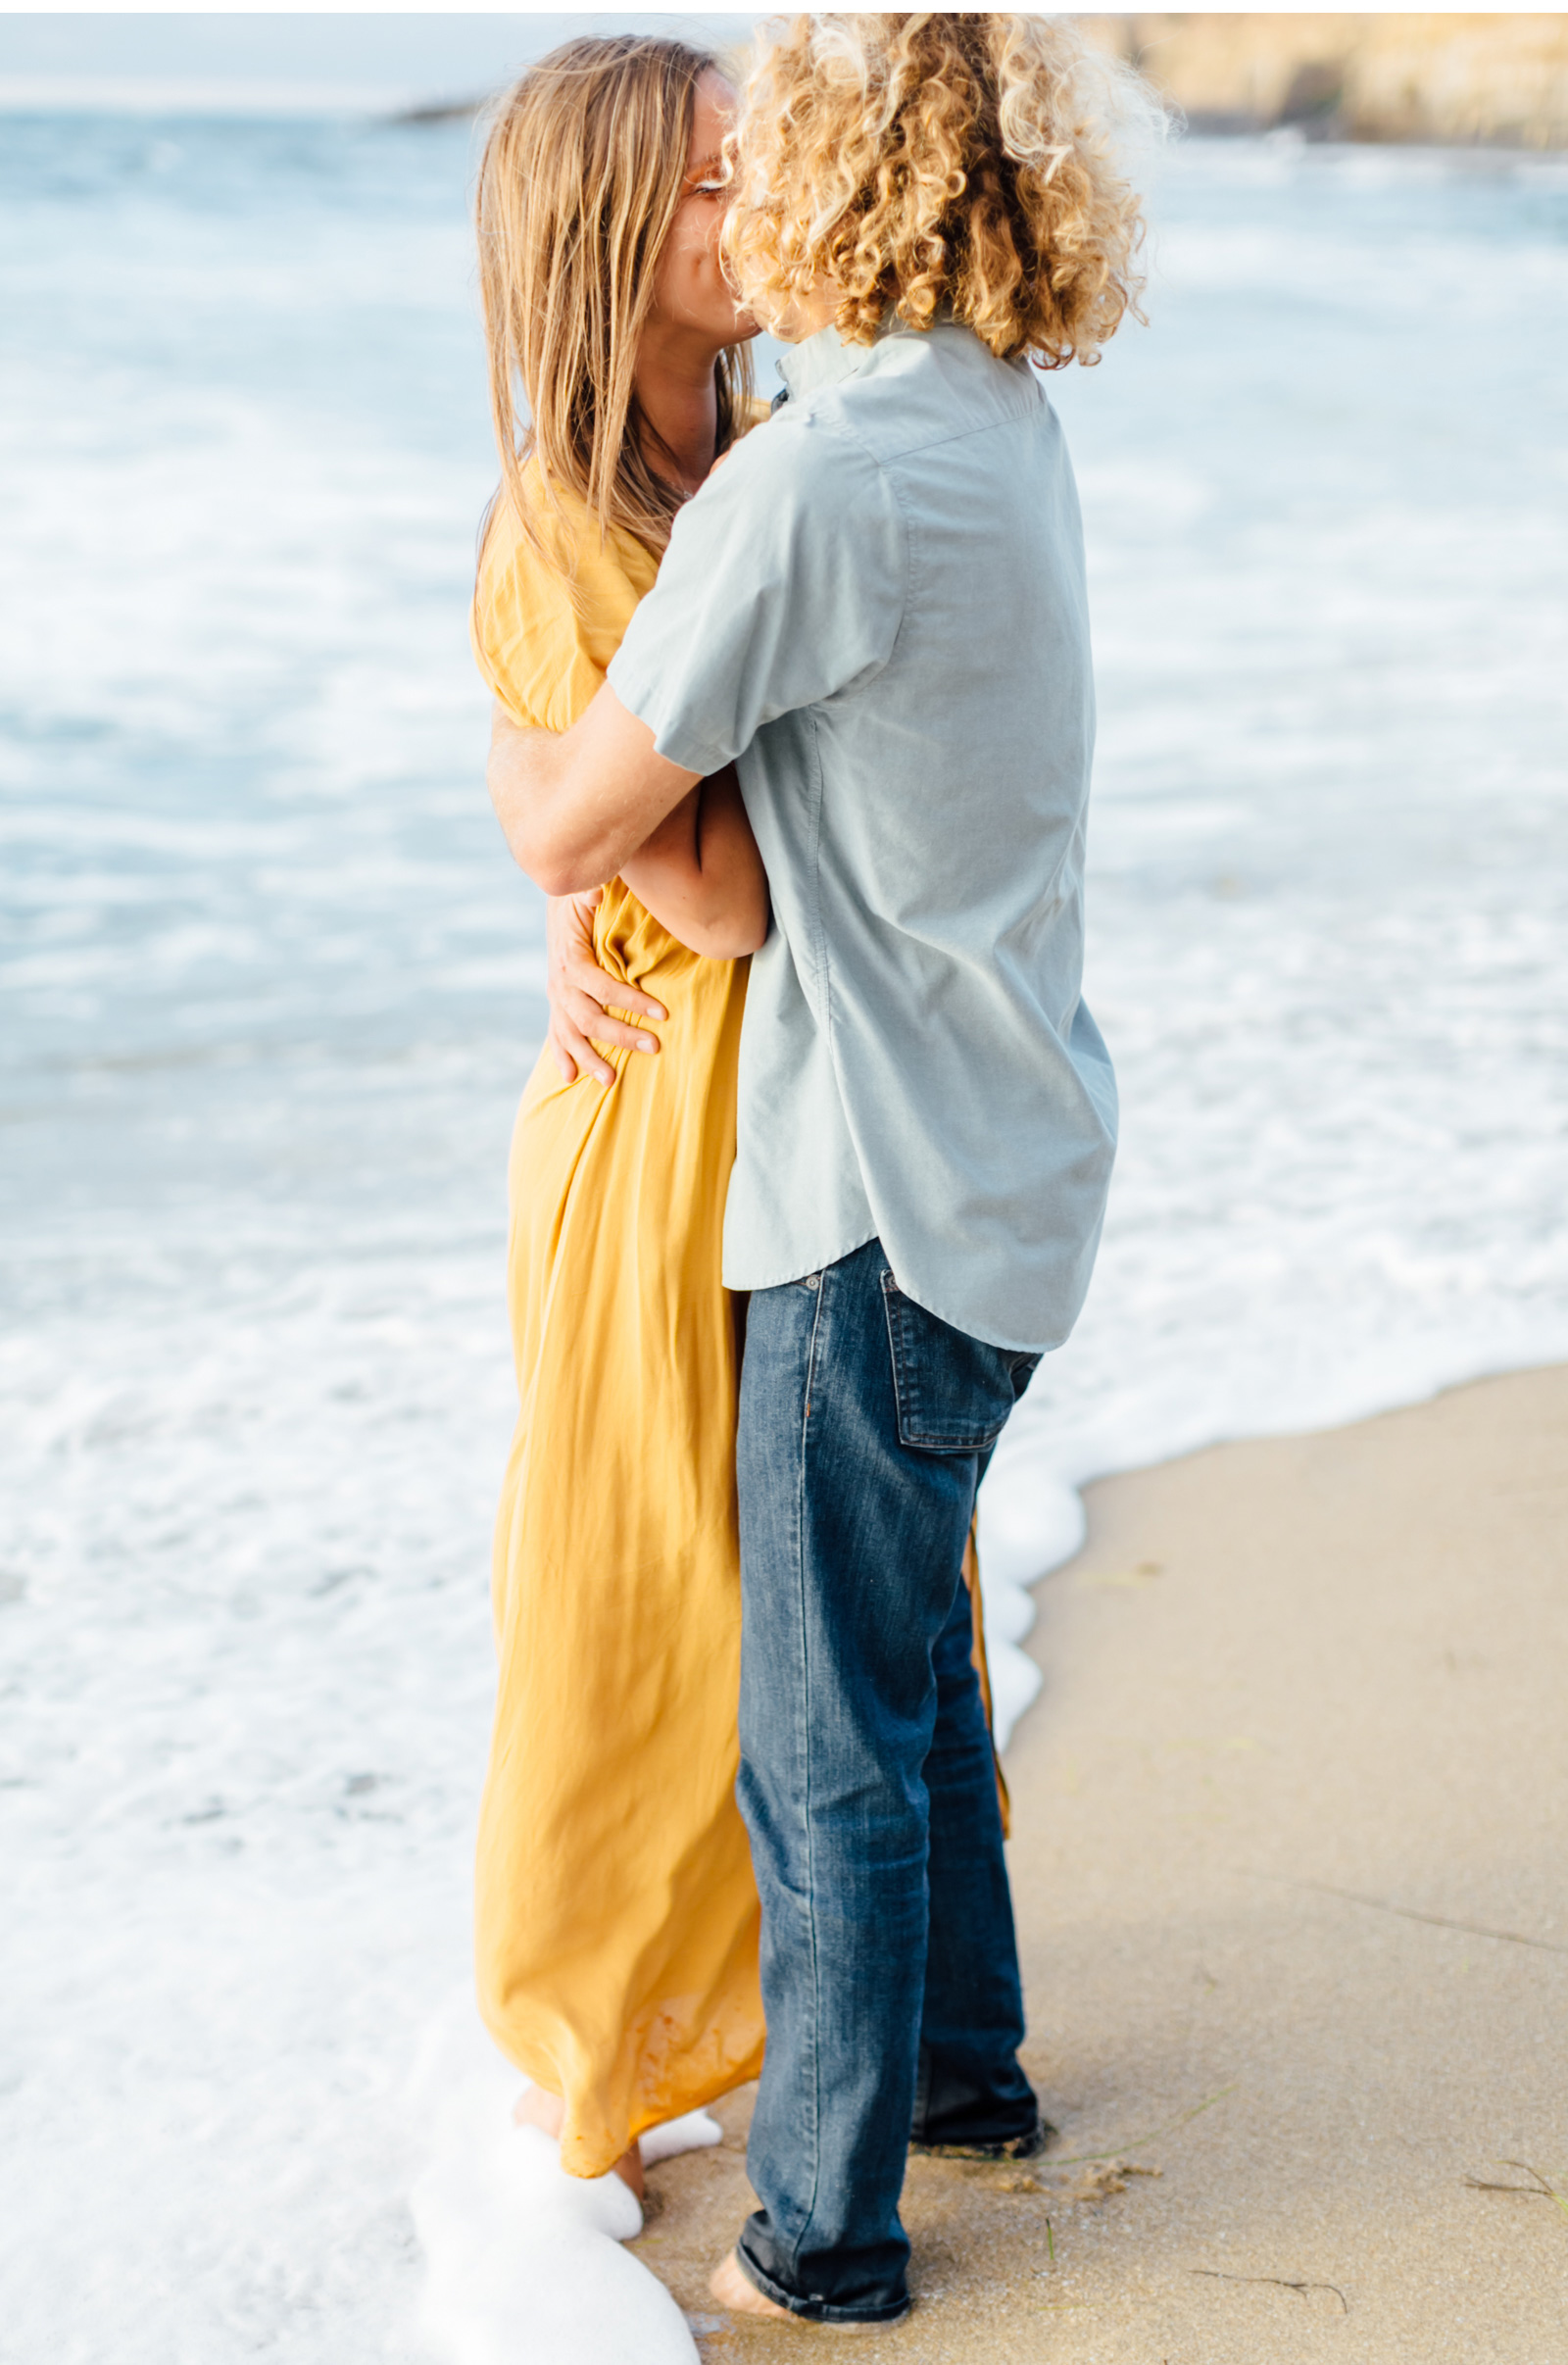 Southern-California-Engagement-Photographer-Natalie-Schutt-Photography_04.jpg